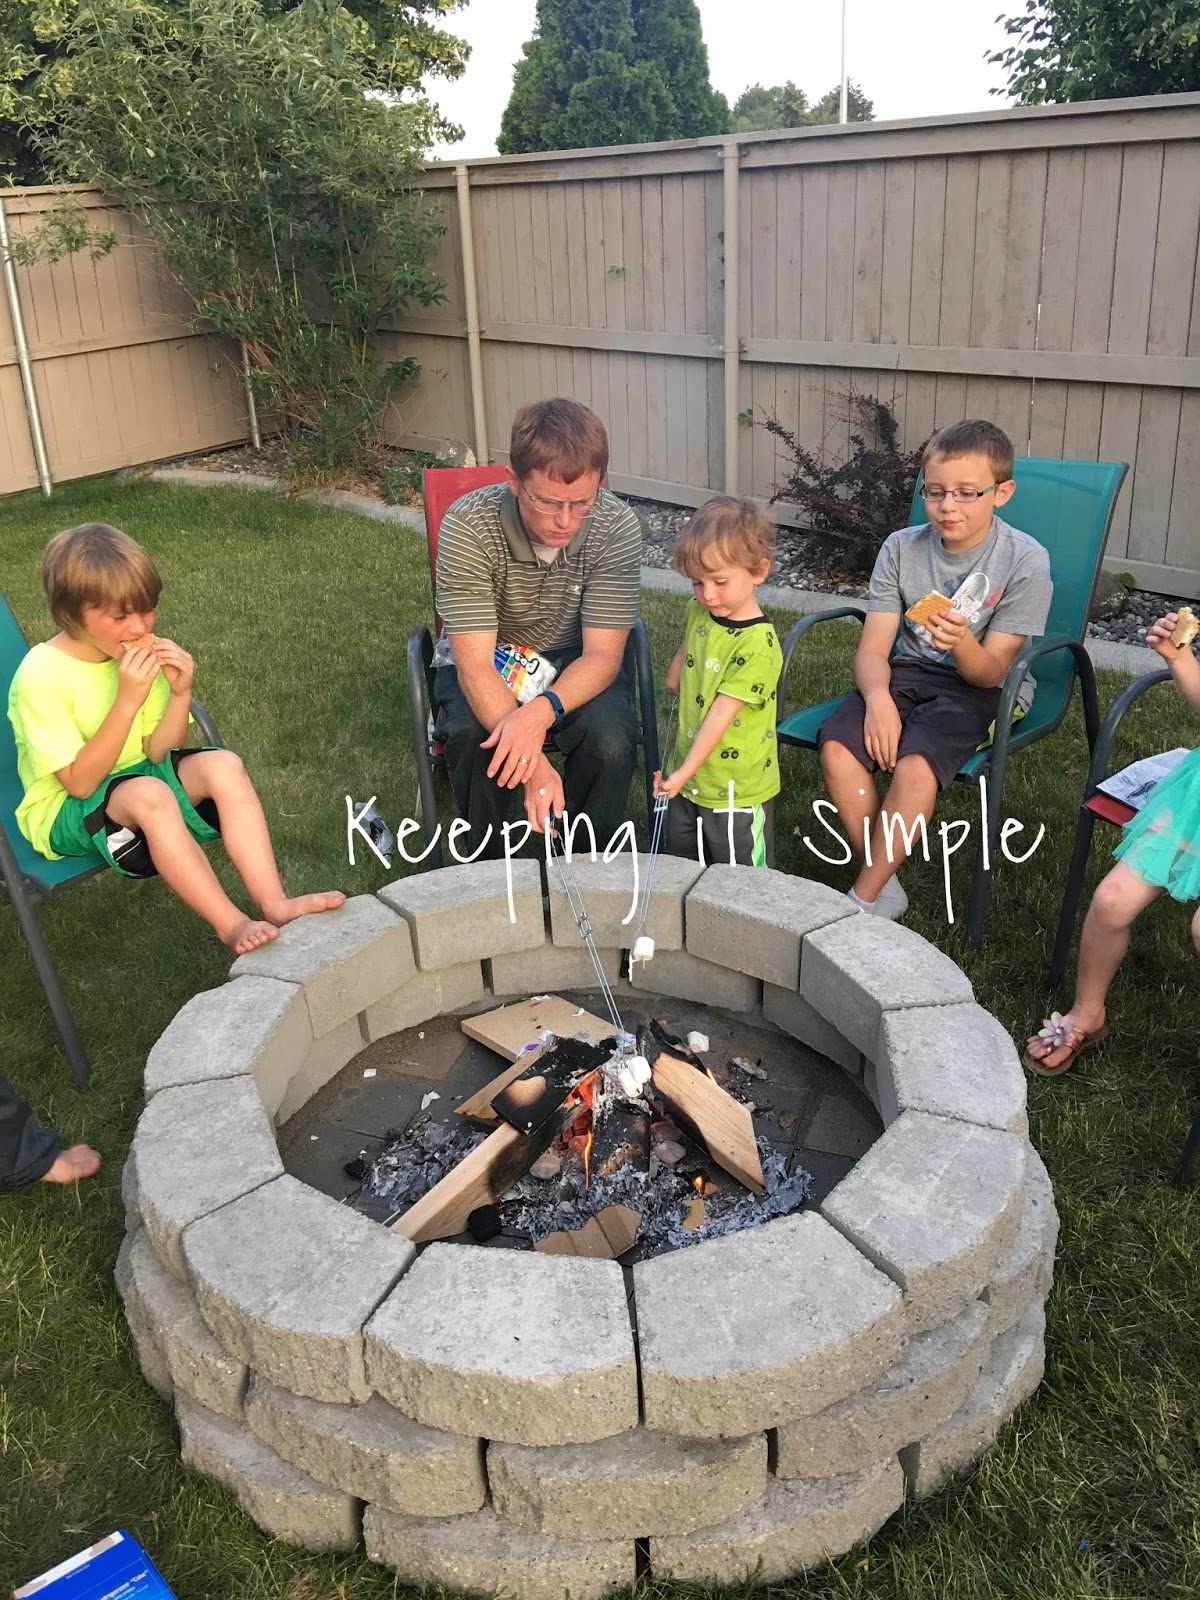 Patio Fire Pit Ideas How To Build A Diy Fire Pit For Only 60 Keeping It Simple